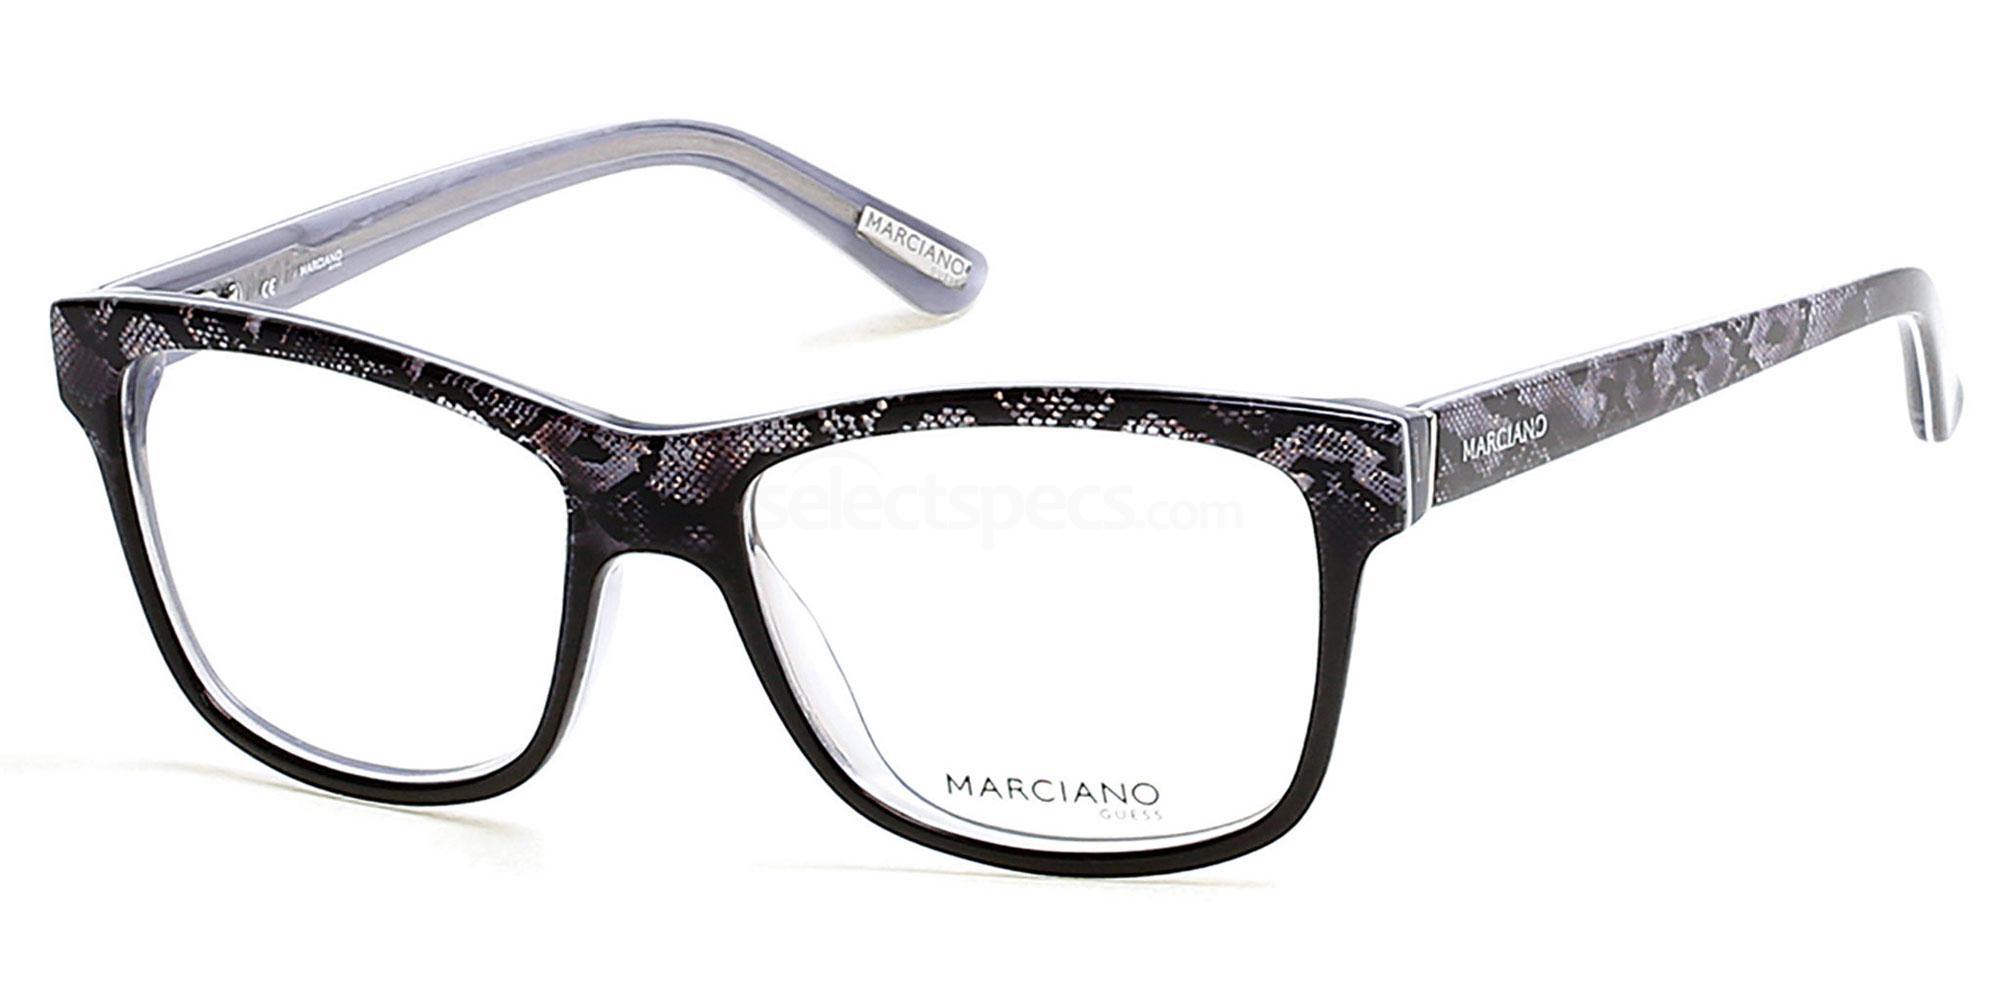 005 GM0279 Glasses, Guess by Marciano